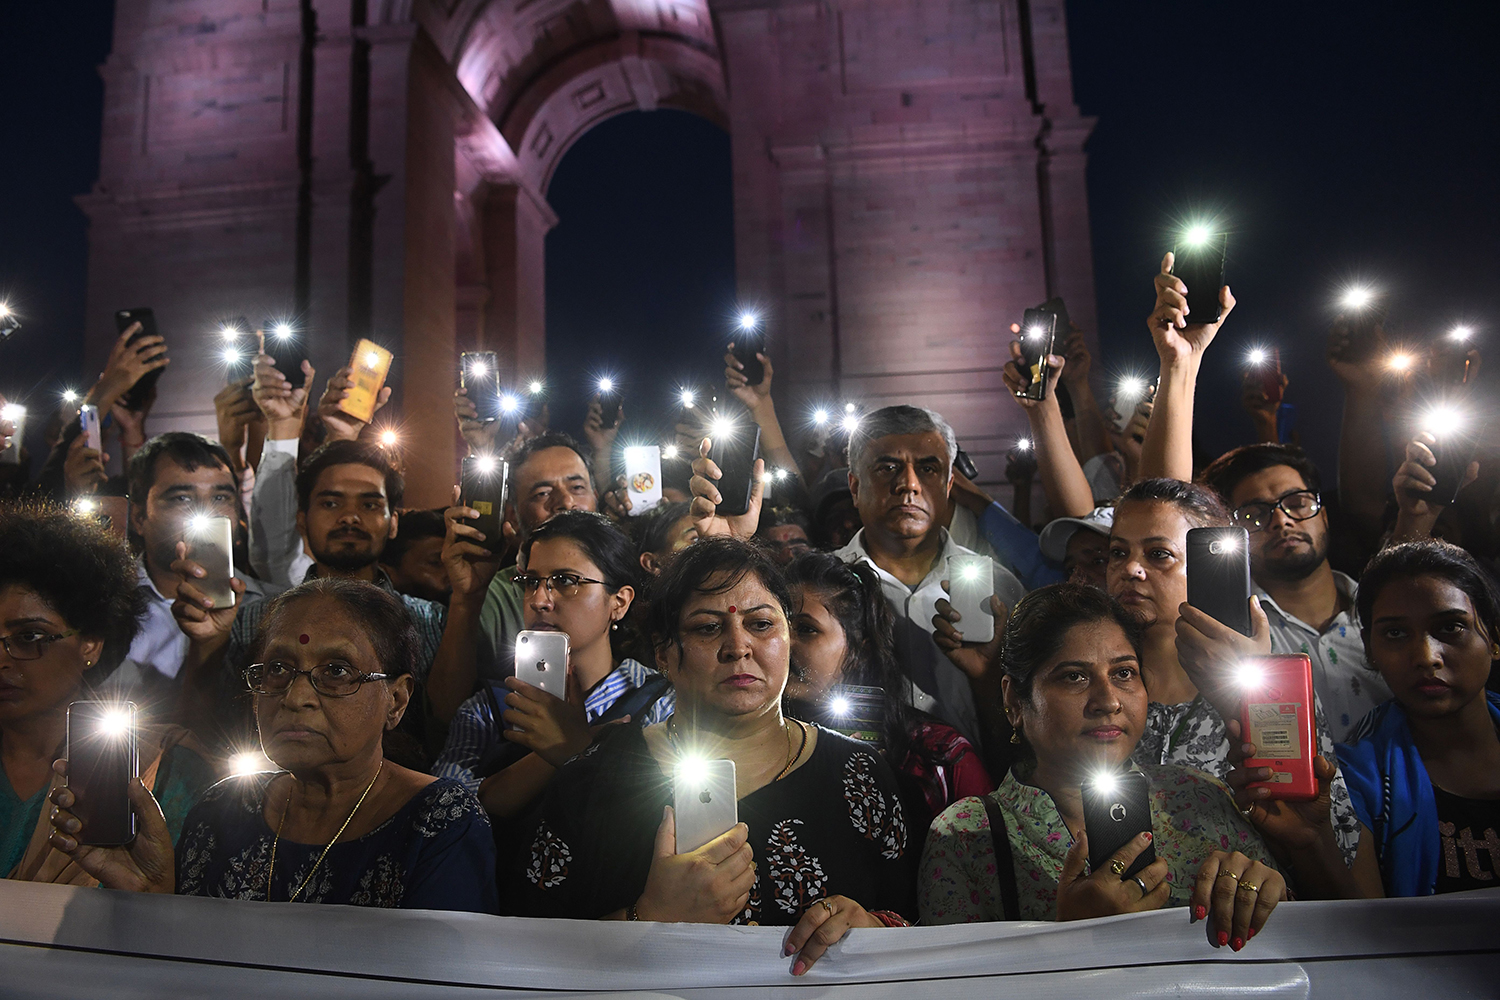 Indian social activists take part in a rally in front of the India Gate monument in solidarity with the Unnao rape victim in New Delhi on July 29. An Indian teenager who accused a senior politician of rape is fighting for her life after being critically injured in a crash that killed two relatives, raising suspicions of foul play. SAJJAD HUSSAIN/AFP/Getty Images